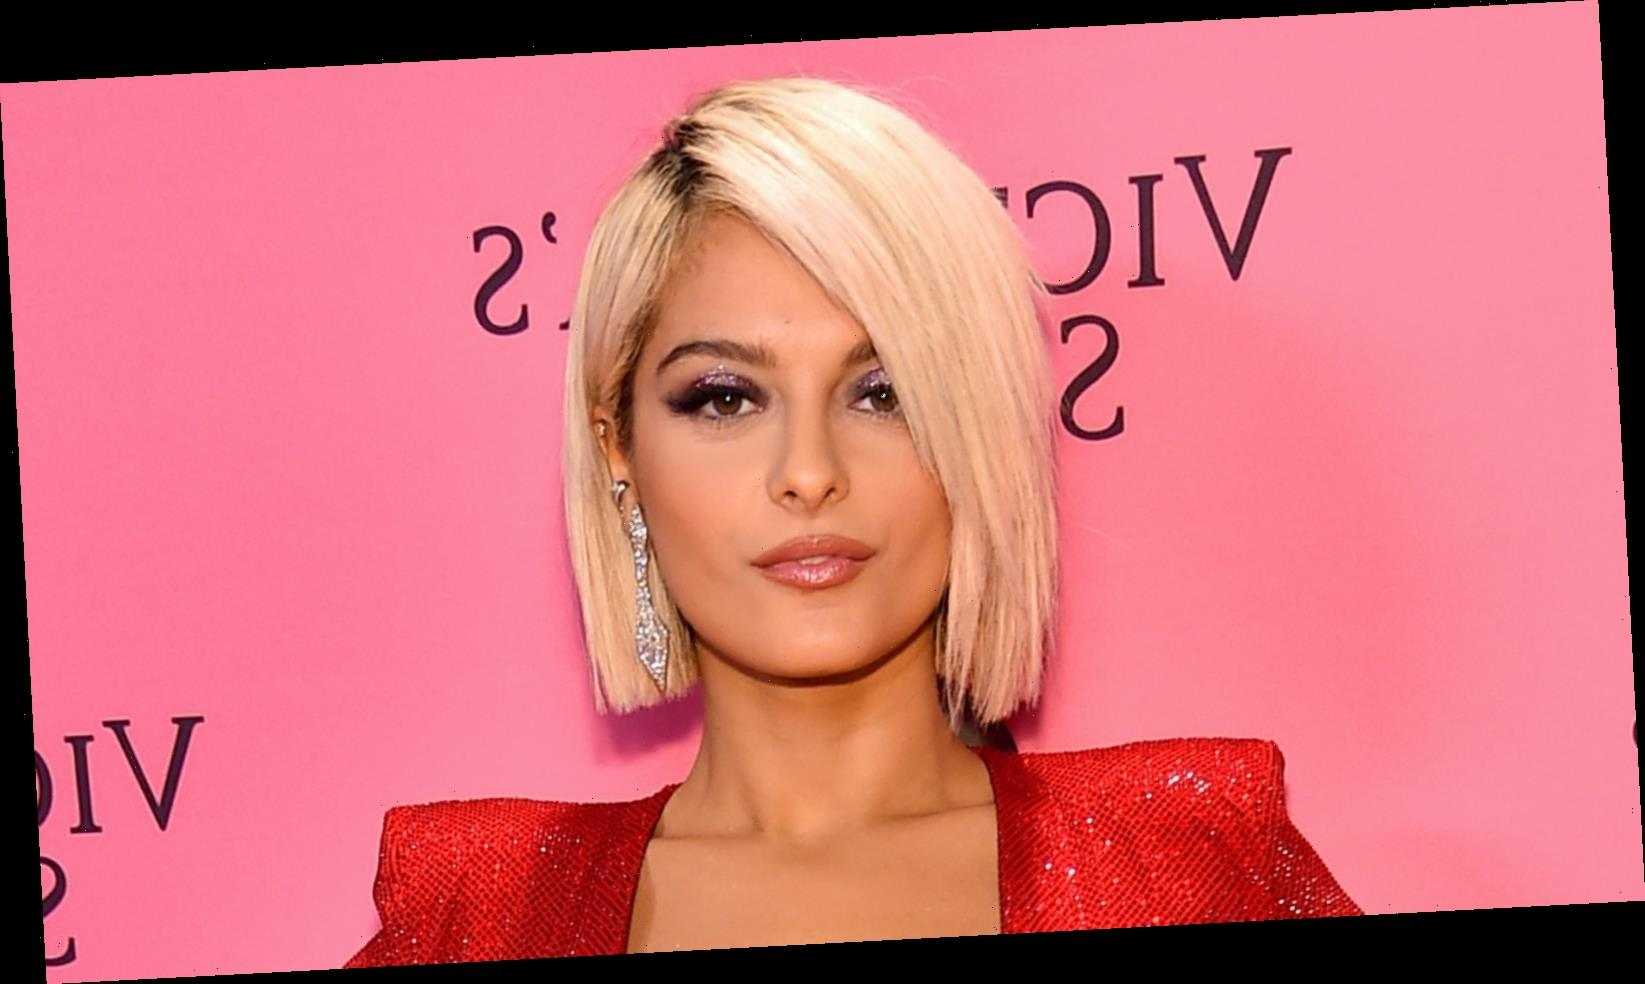 Where does Bebe Rexha live and how big is her house?